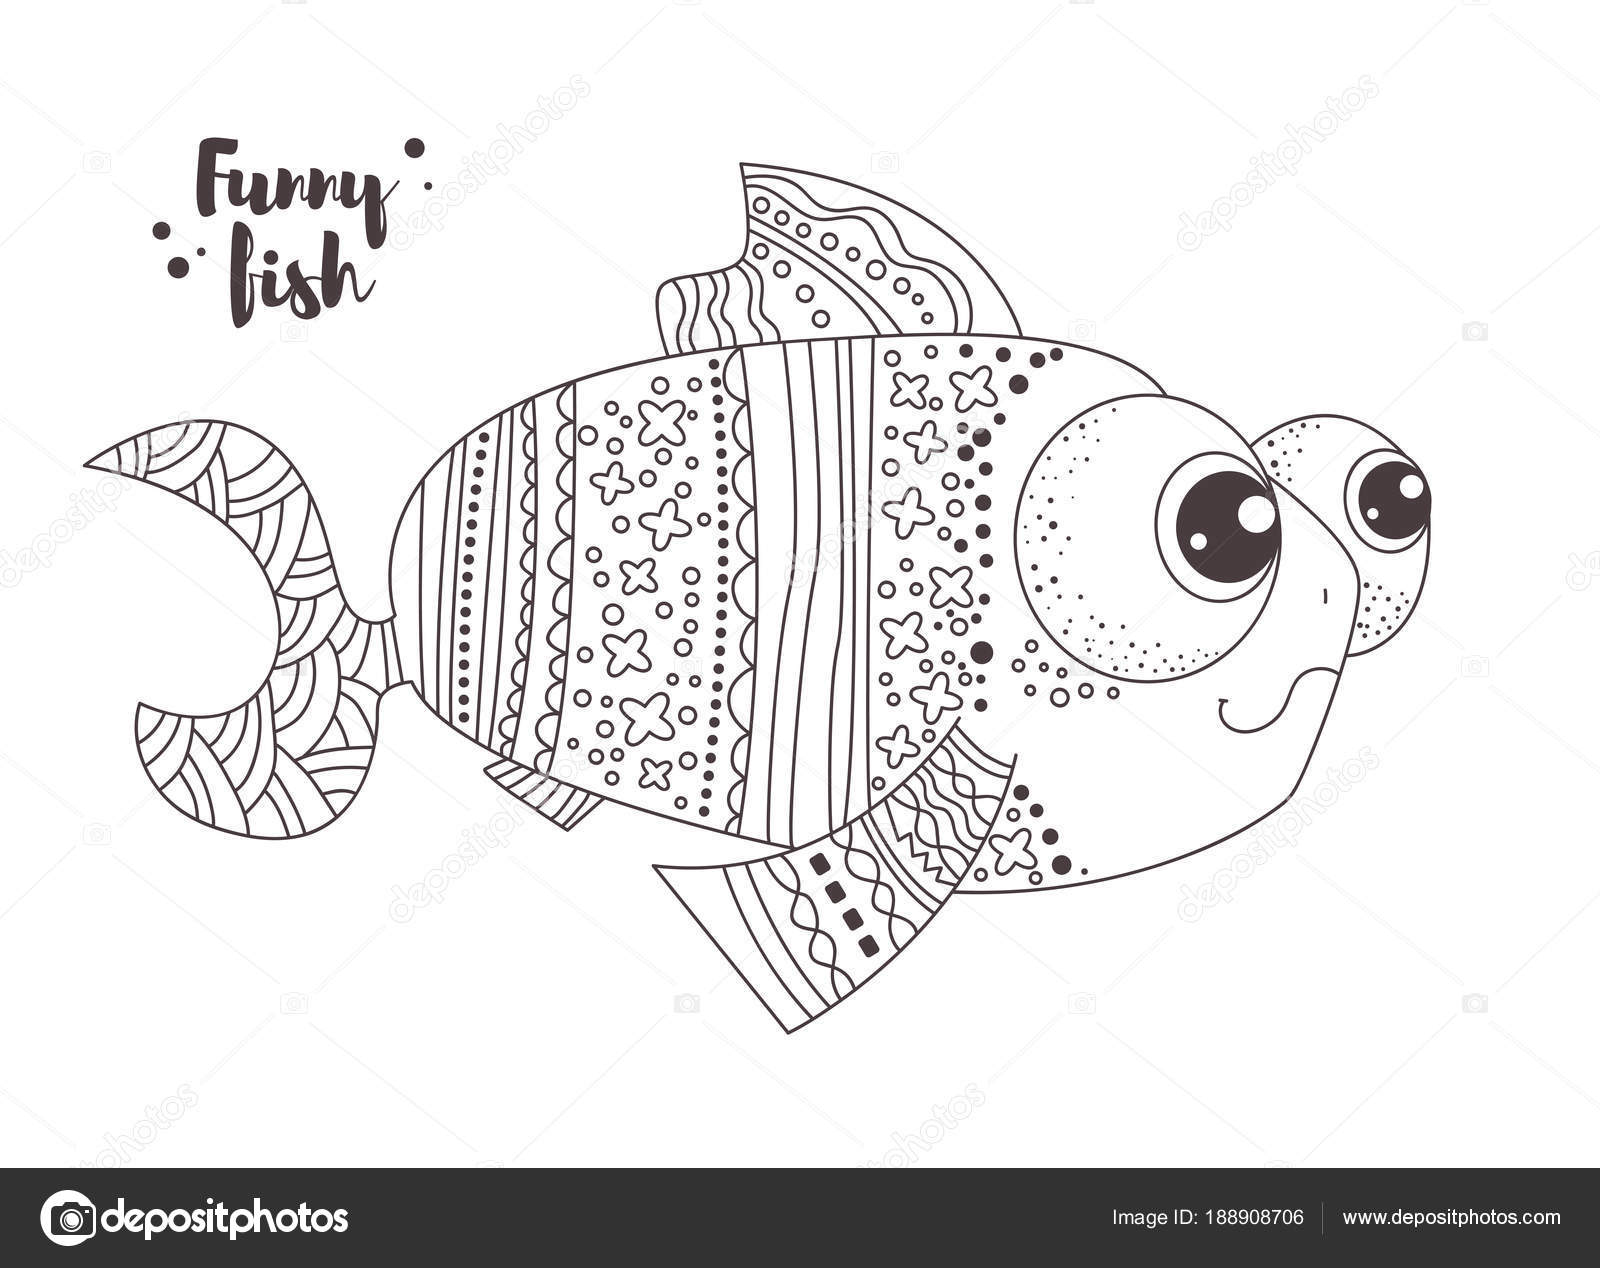 Funny fish. Coloring book — Stock Vector © AnnaViolet #188908706